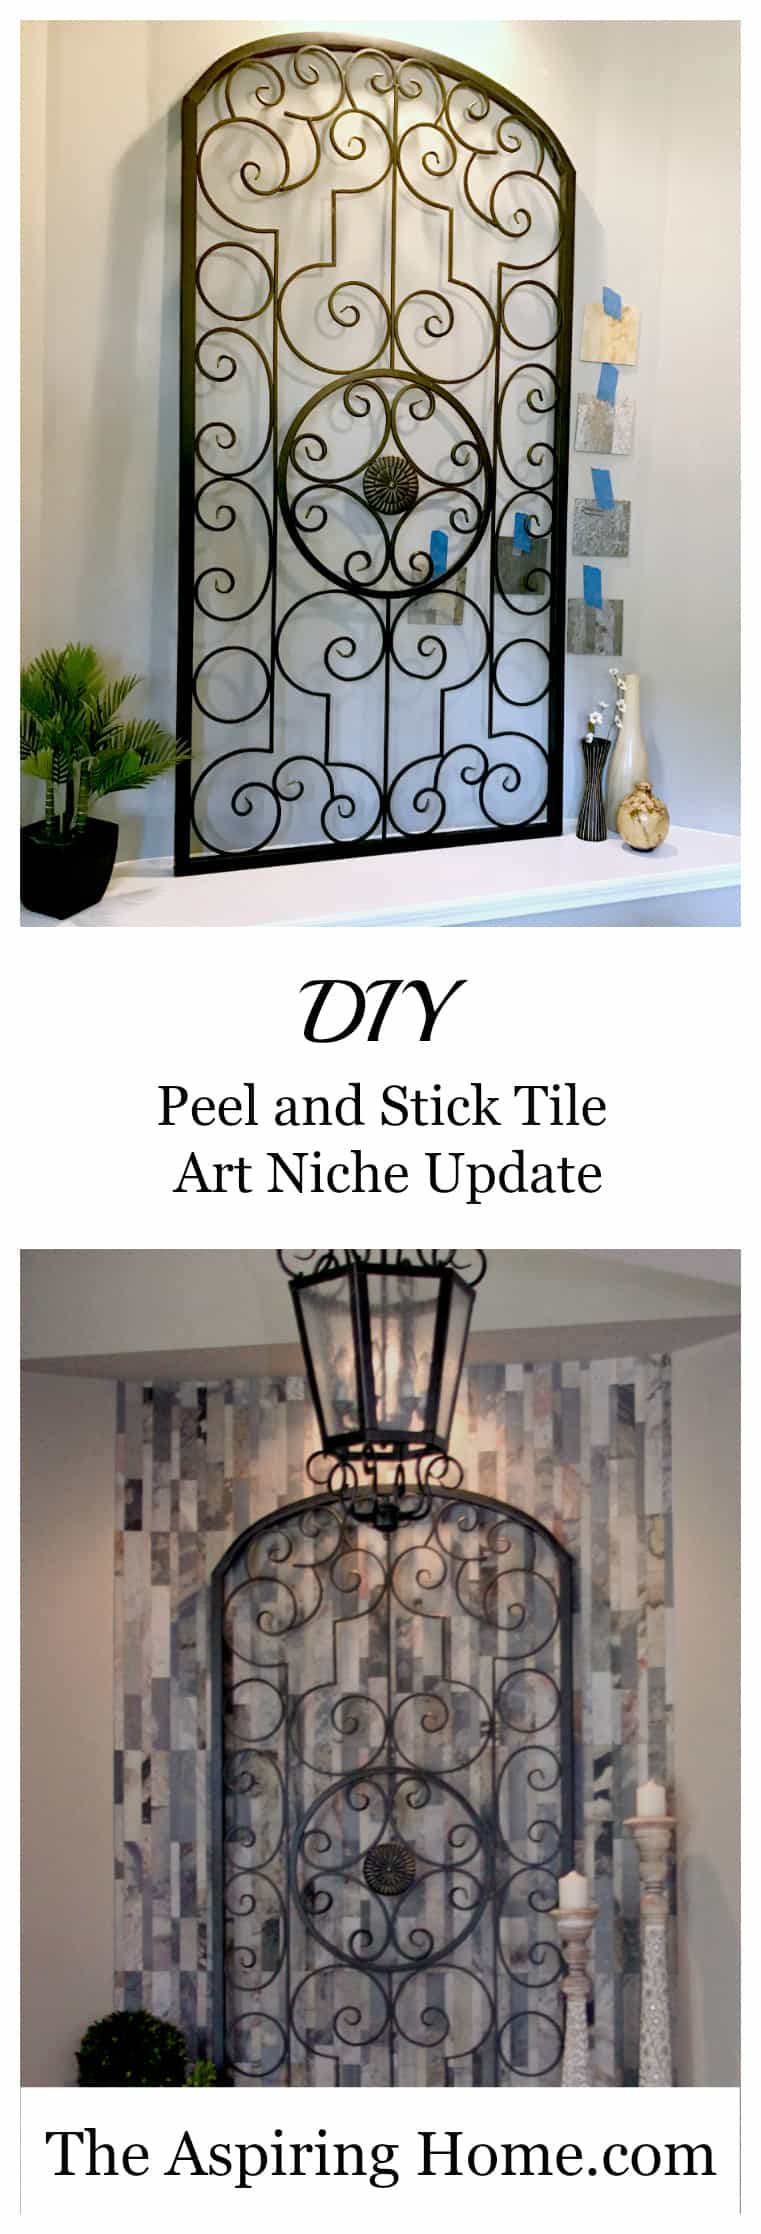 peel-and-stick-tile-art-niche- Collage